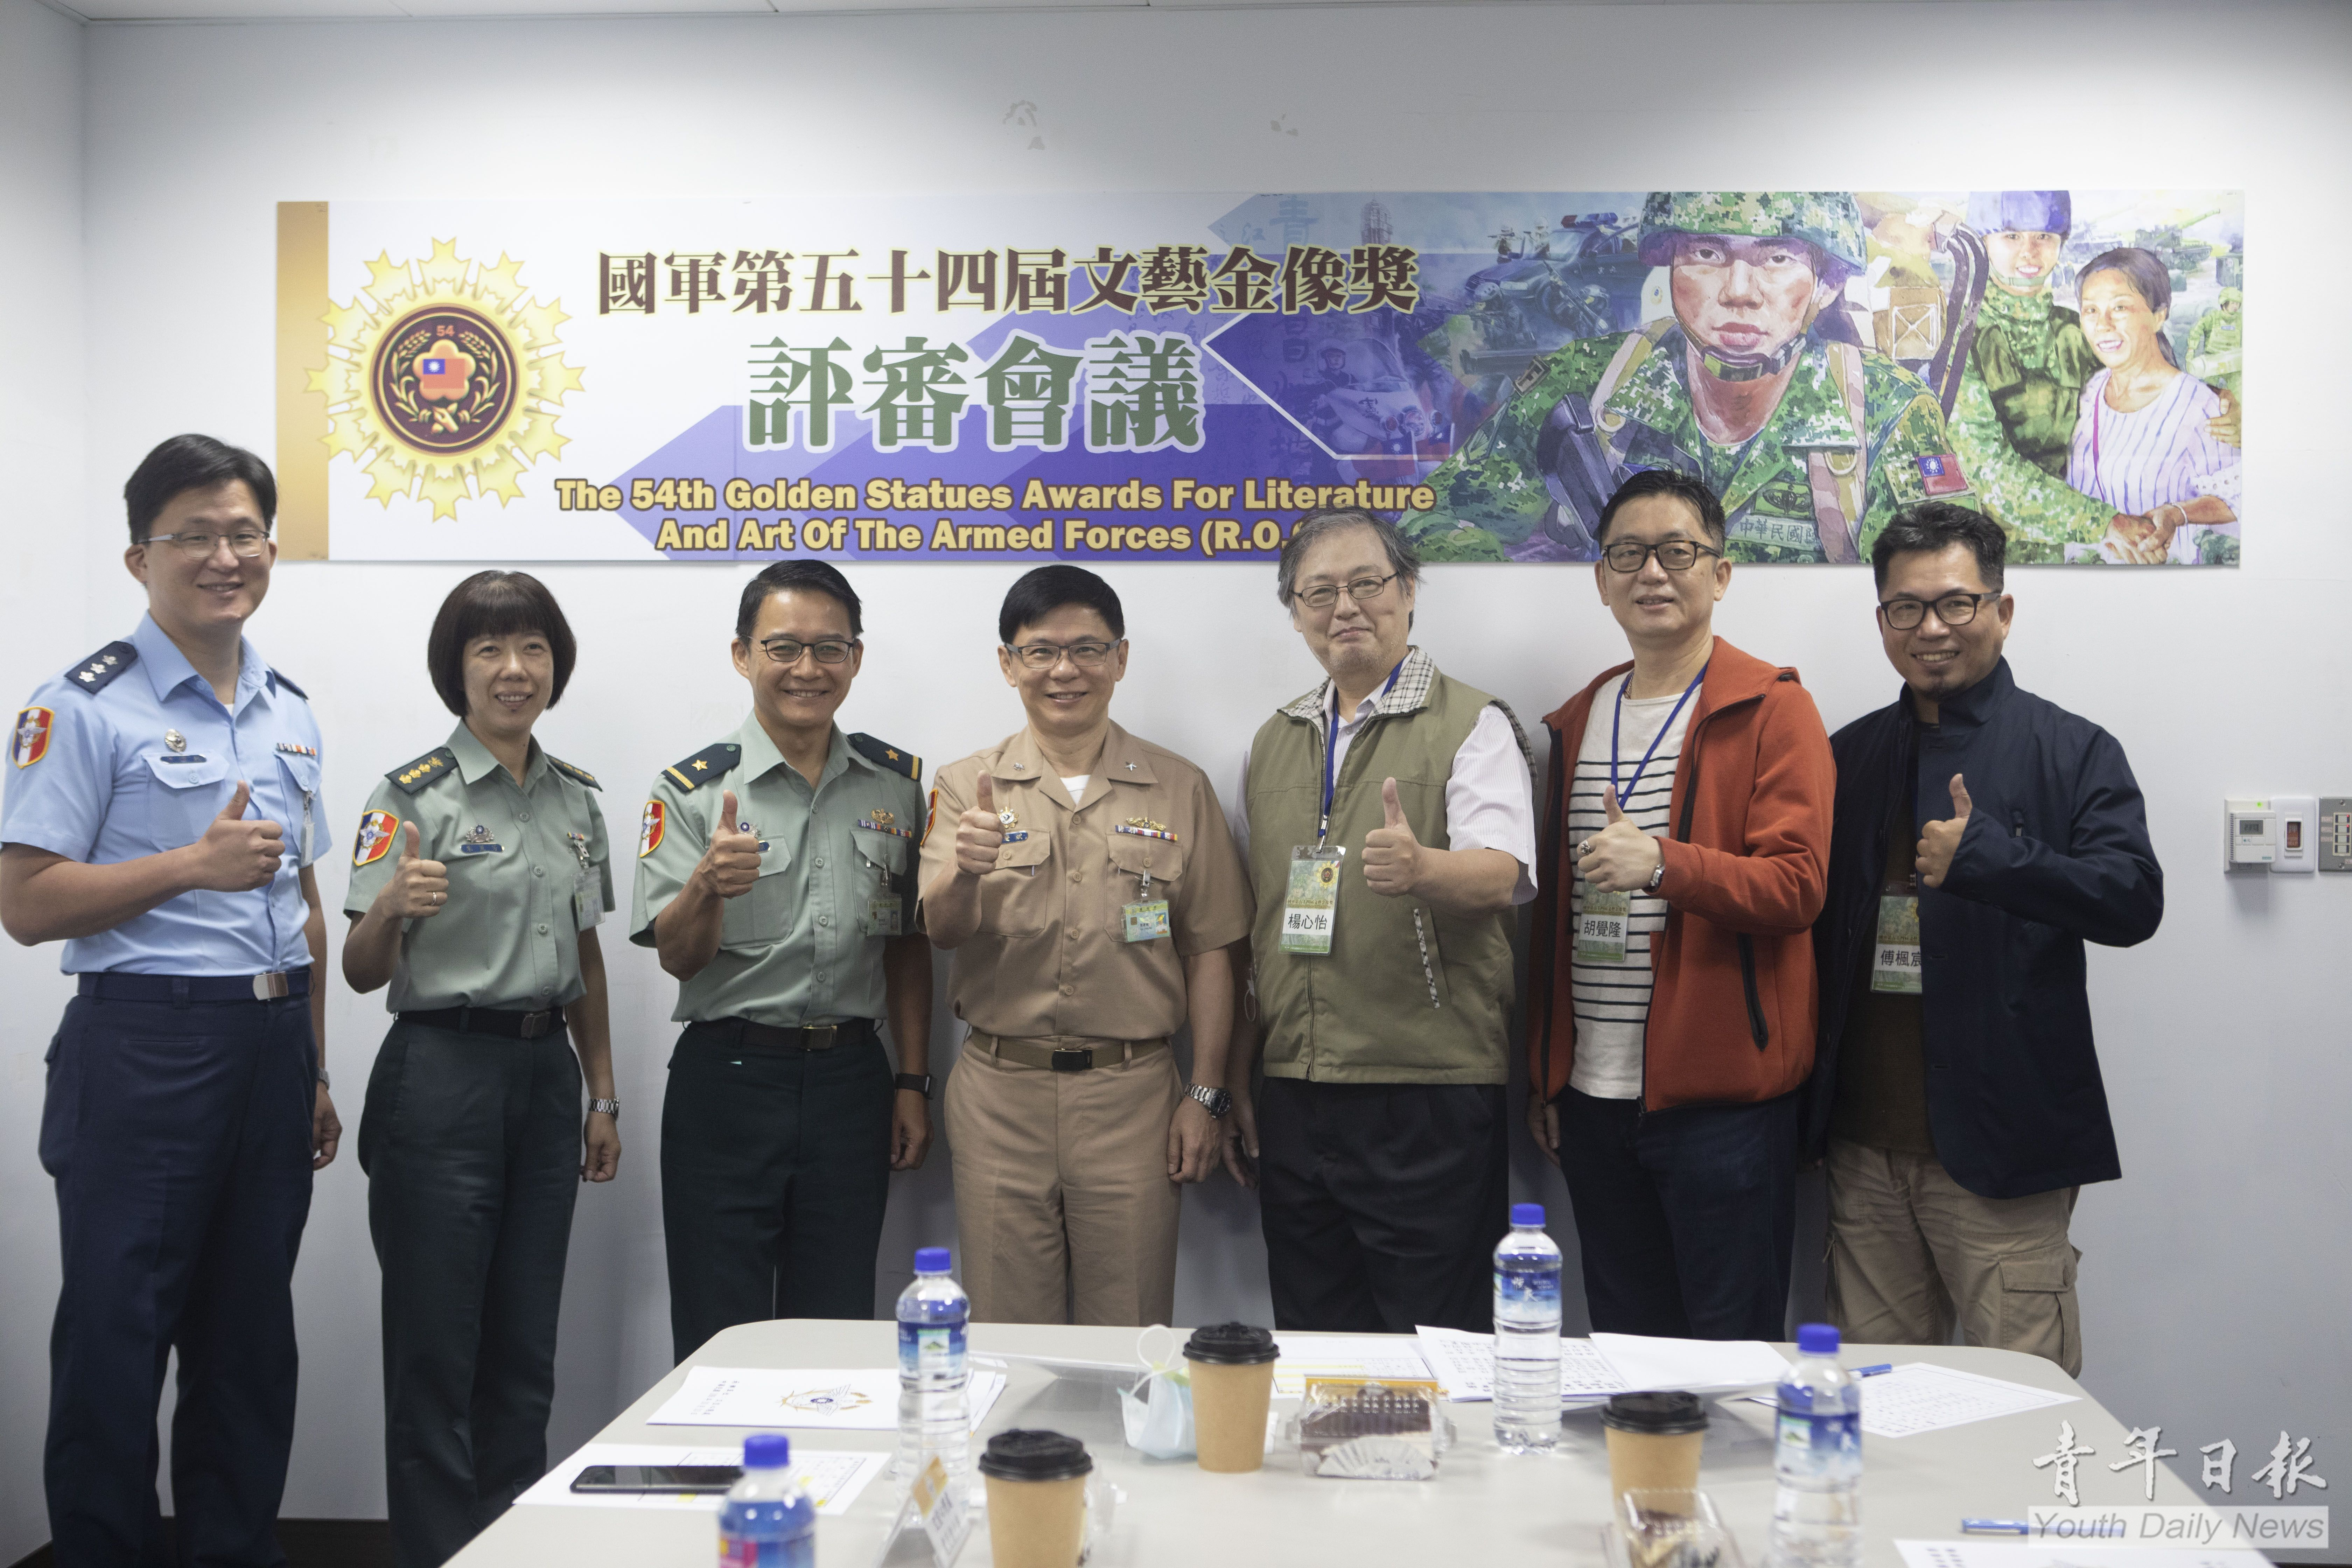 Golden Statues Awards for Literature and Art of The Armed Forces Has Its Preliminary Judging on Comics, Chinese Painting and Photographs